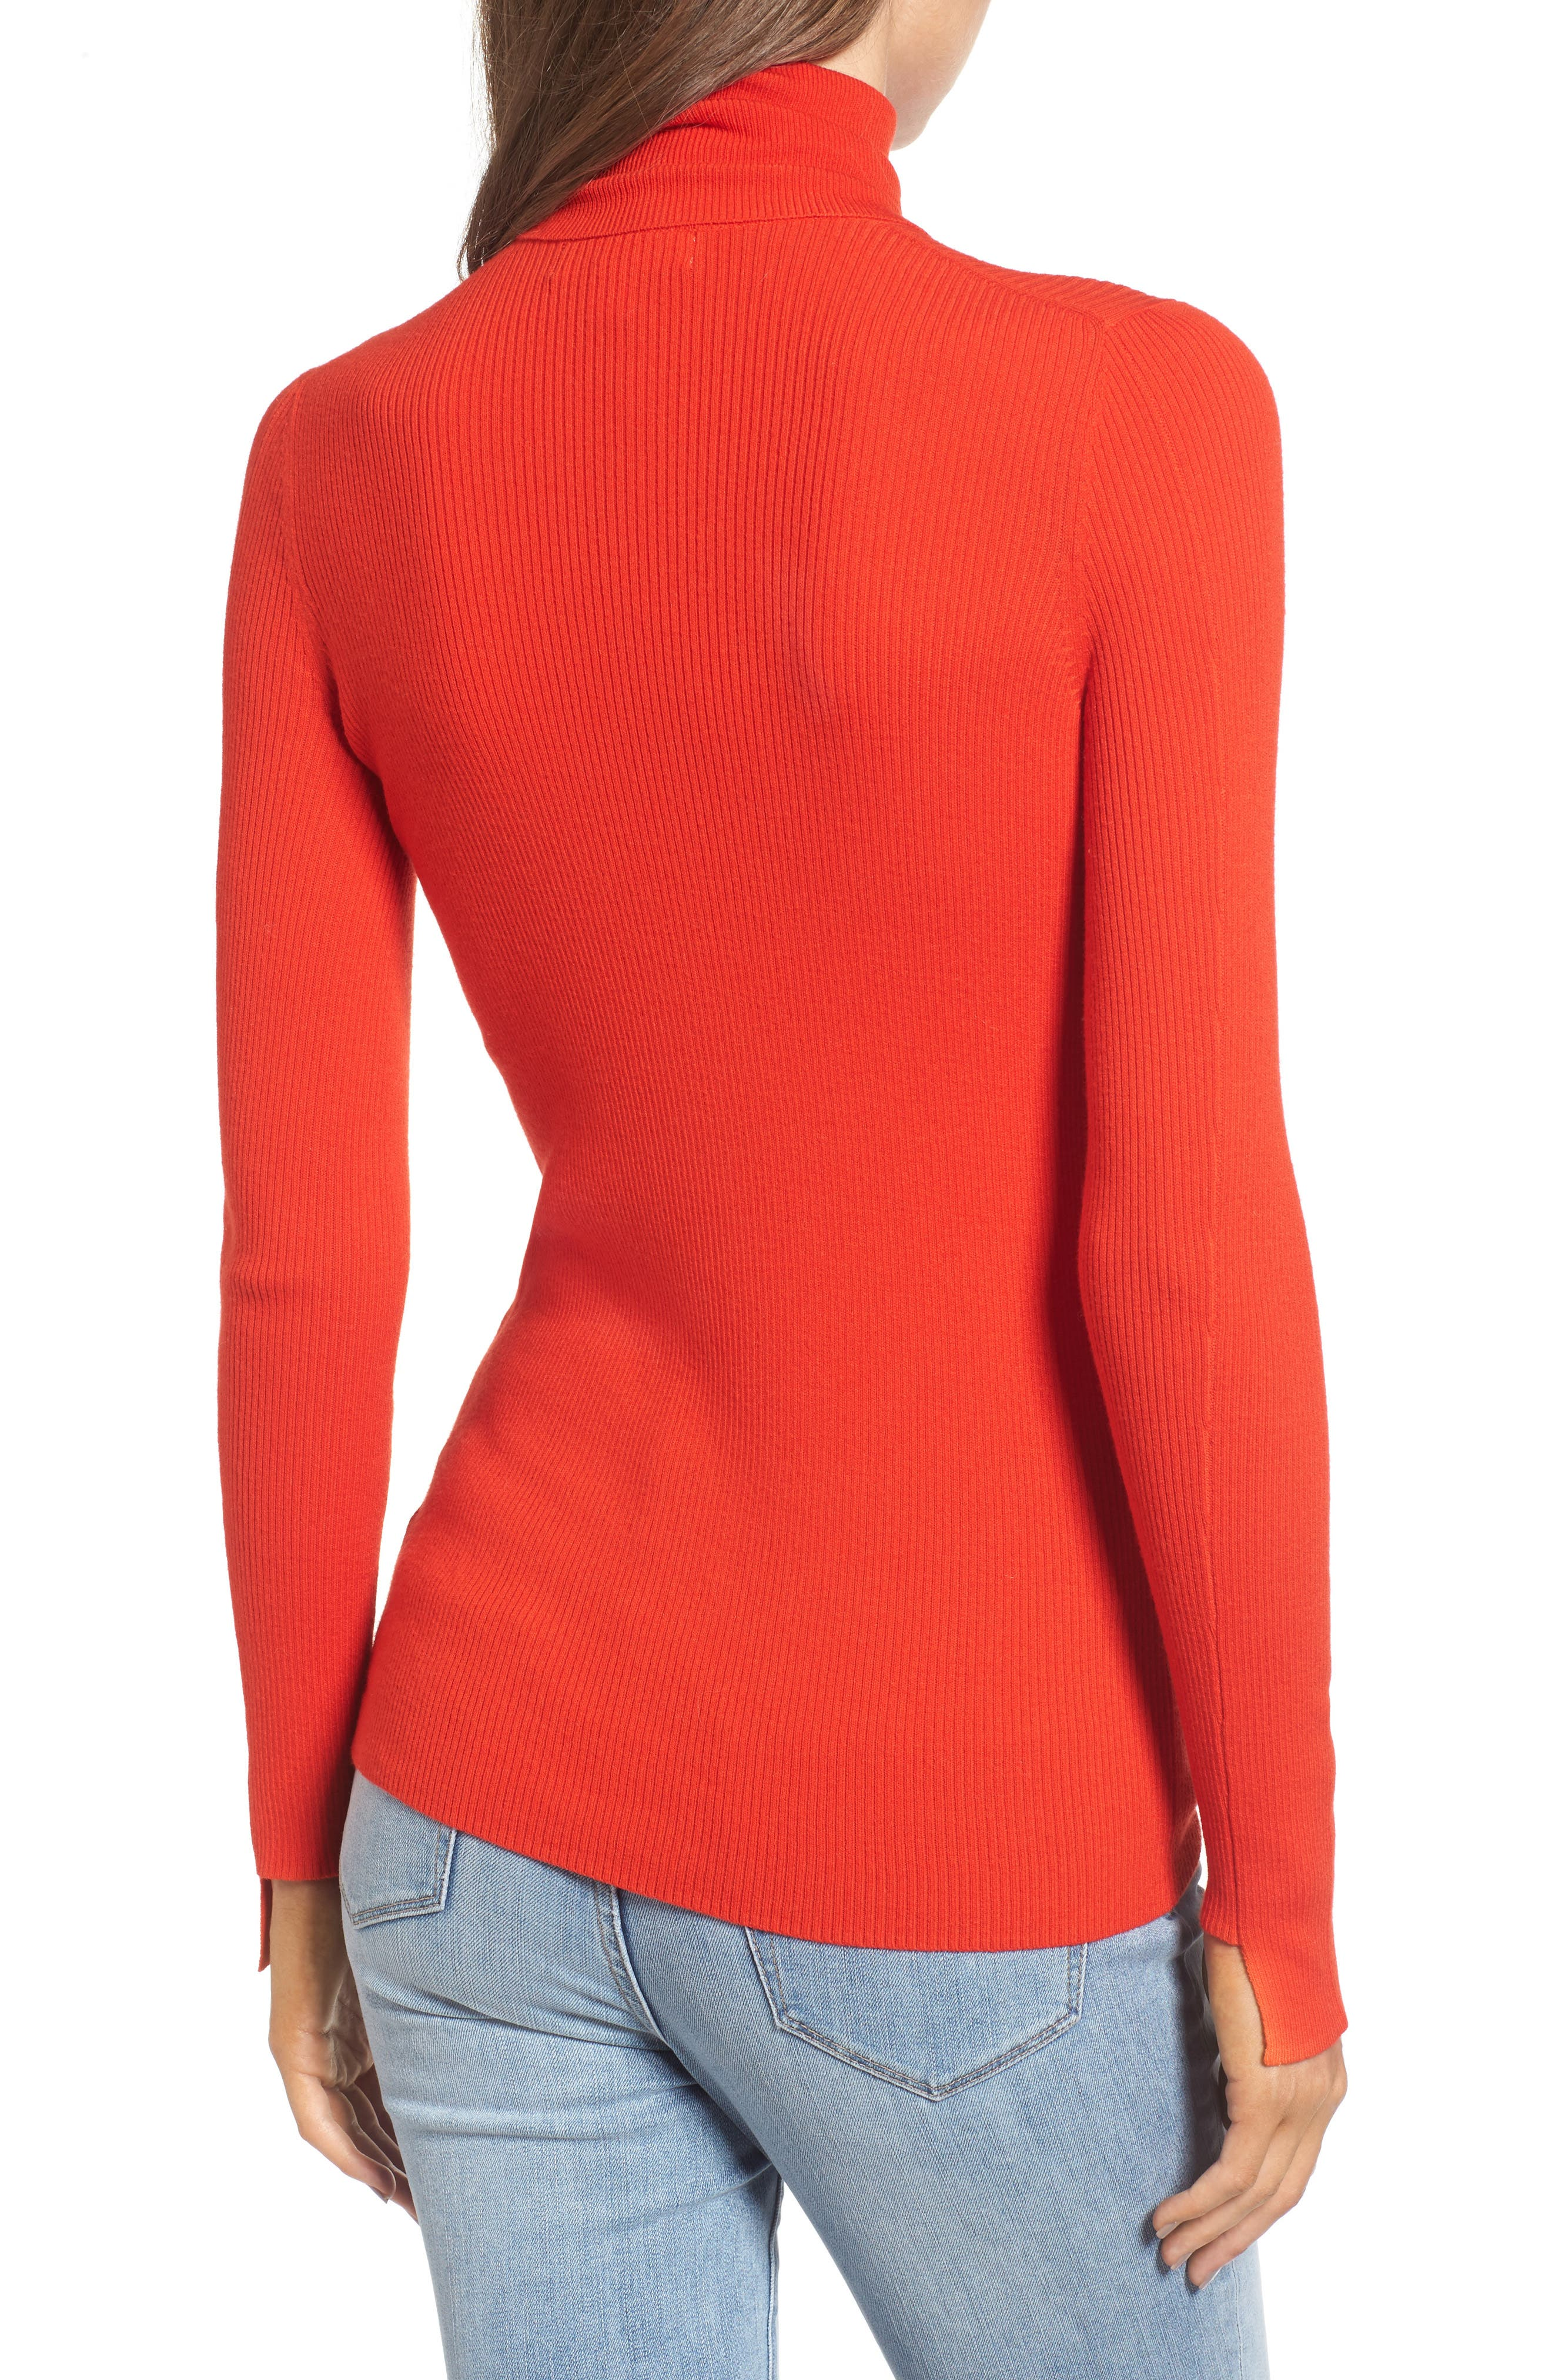 x Something Navy Turtleneck Sweater,                             Alternate thumbnail 3, color,                             Red Fiery